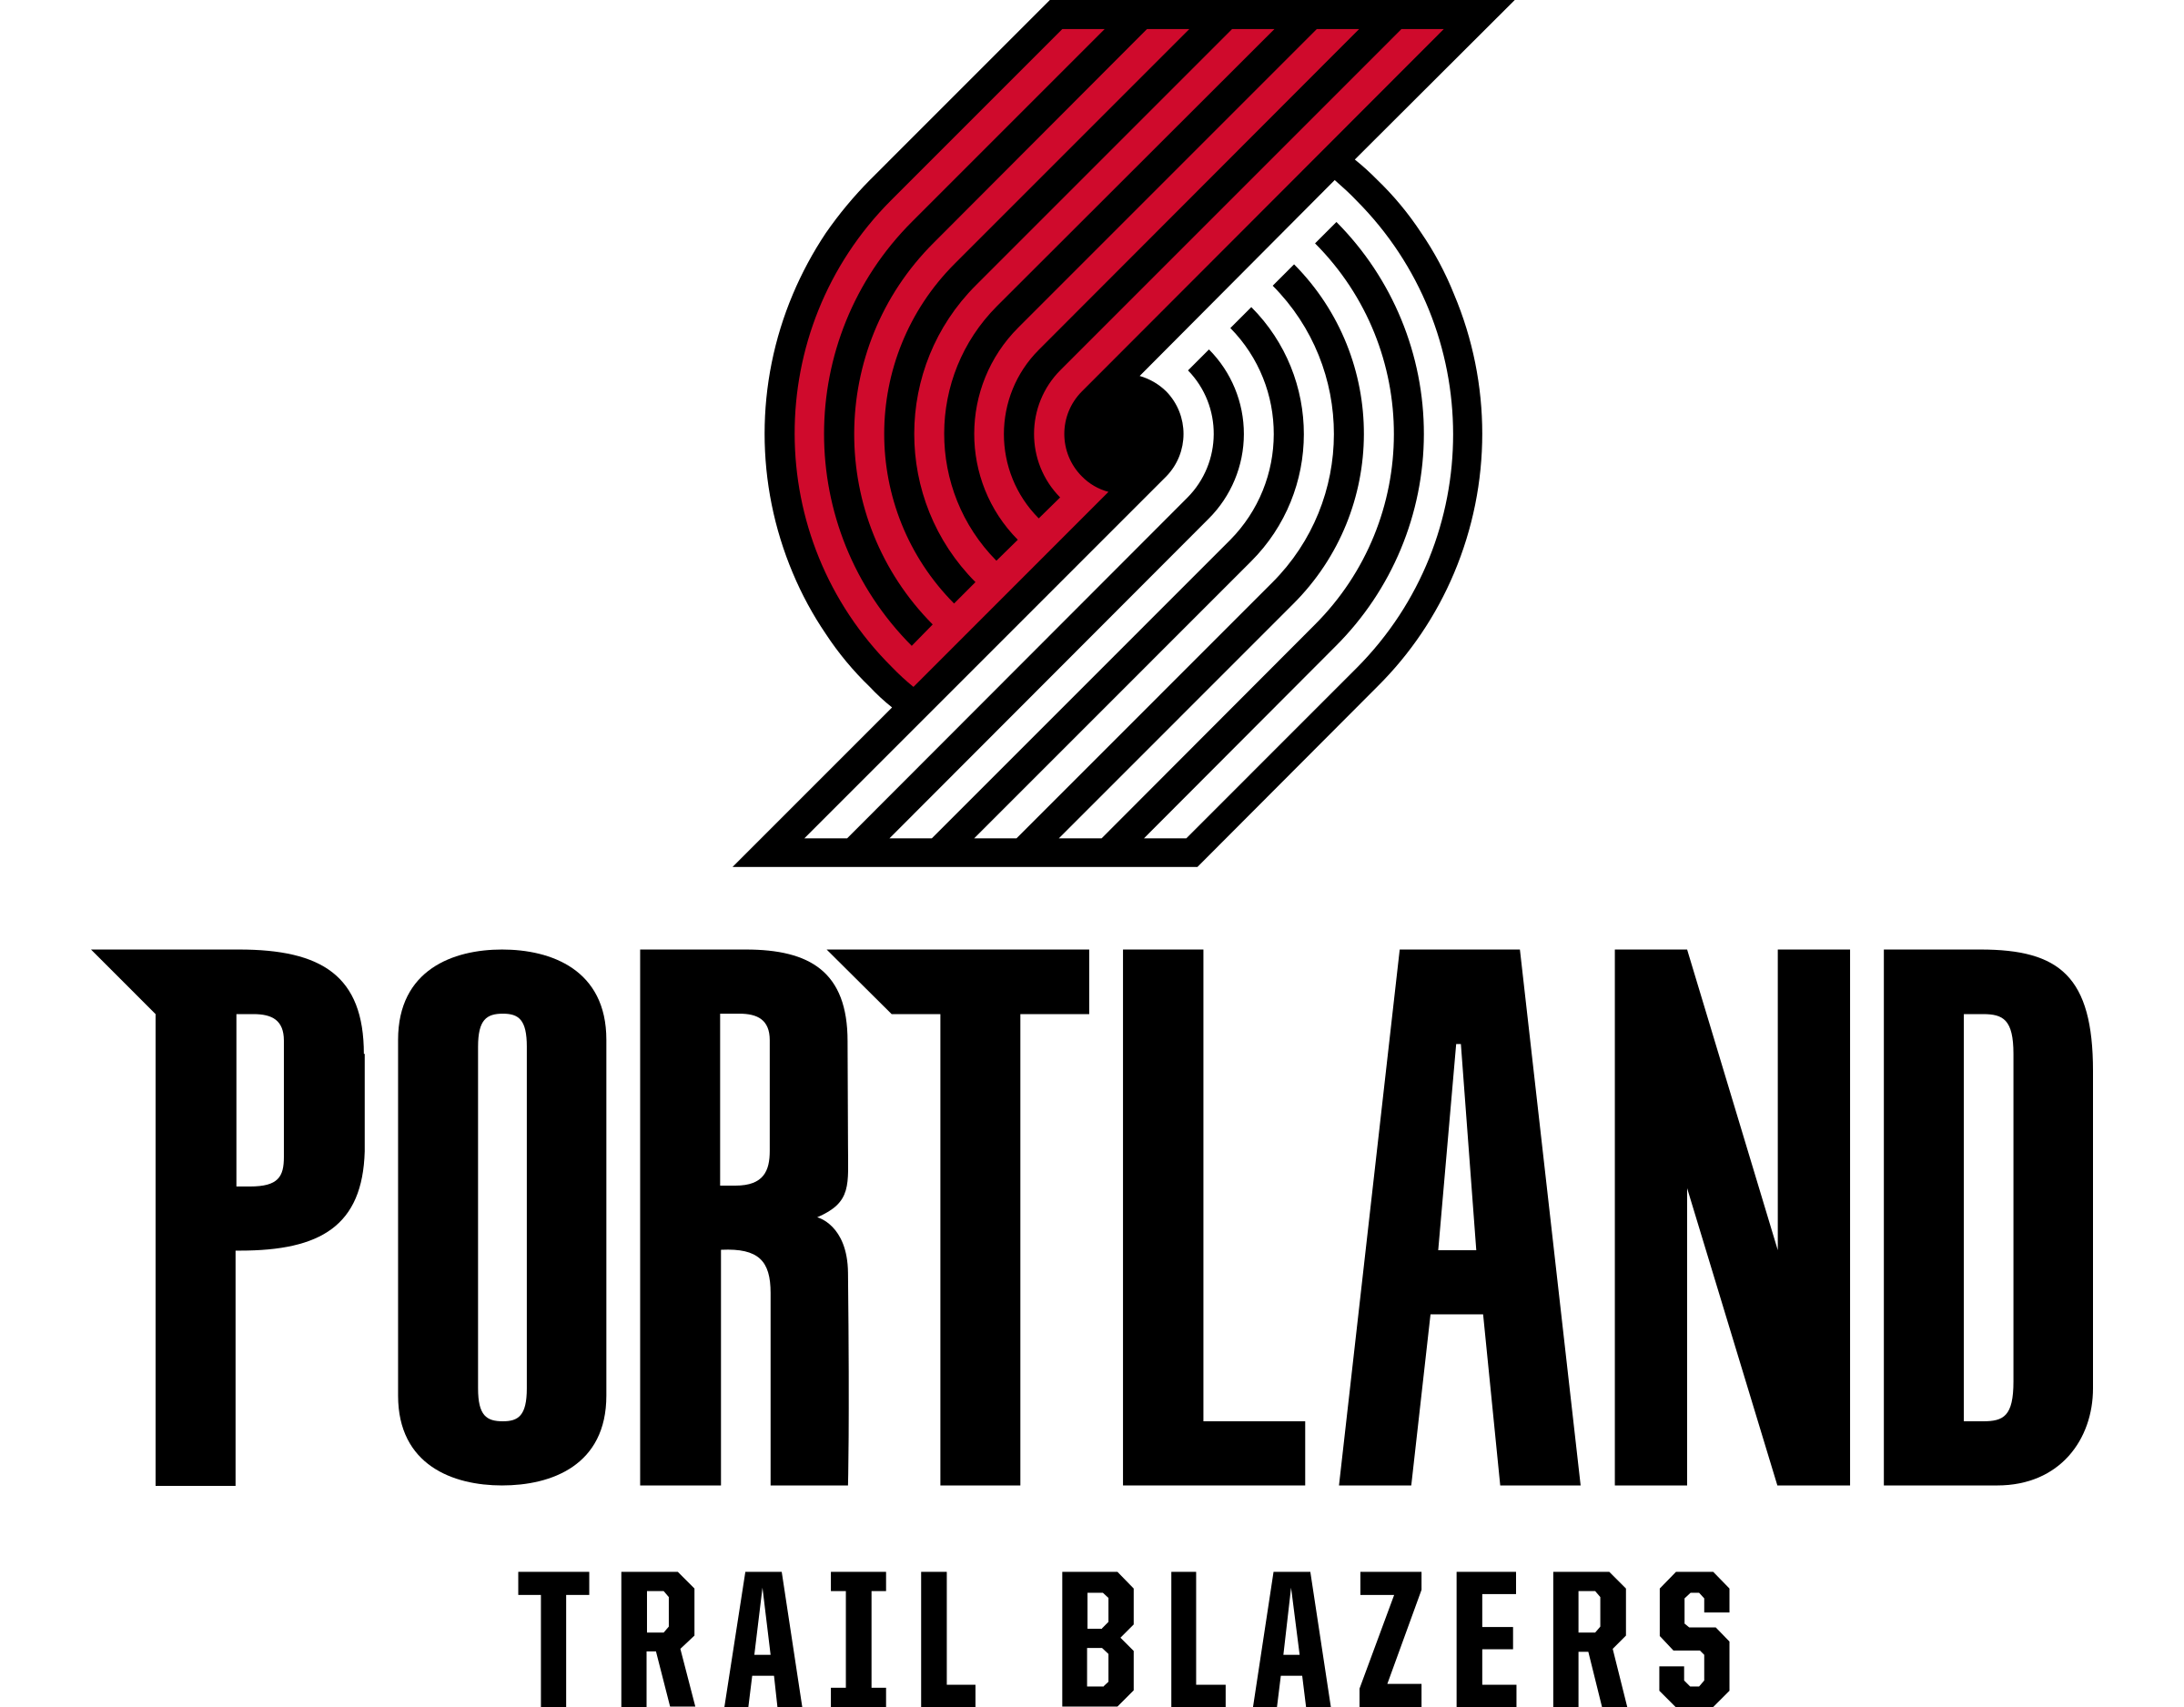 Steelers vector svg. Portland trail blazers logo